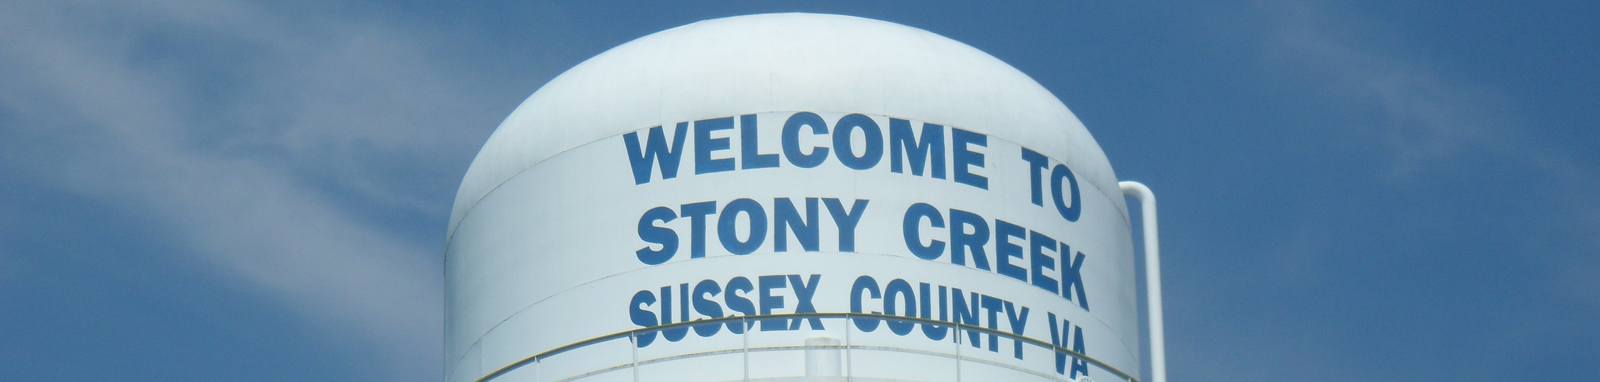 Town of Stony Creek